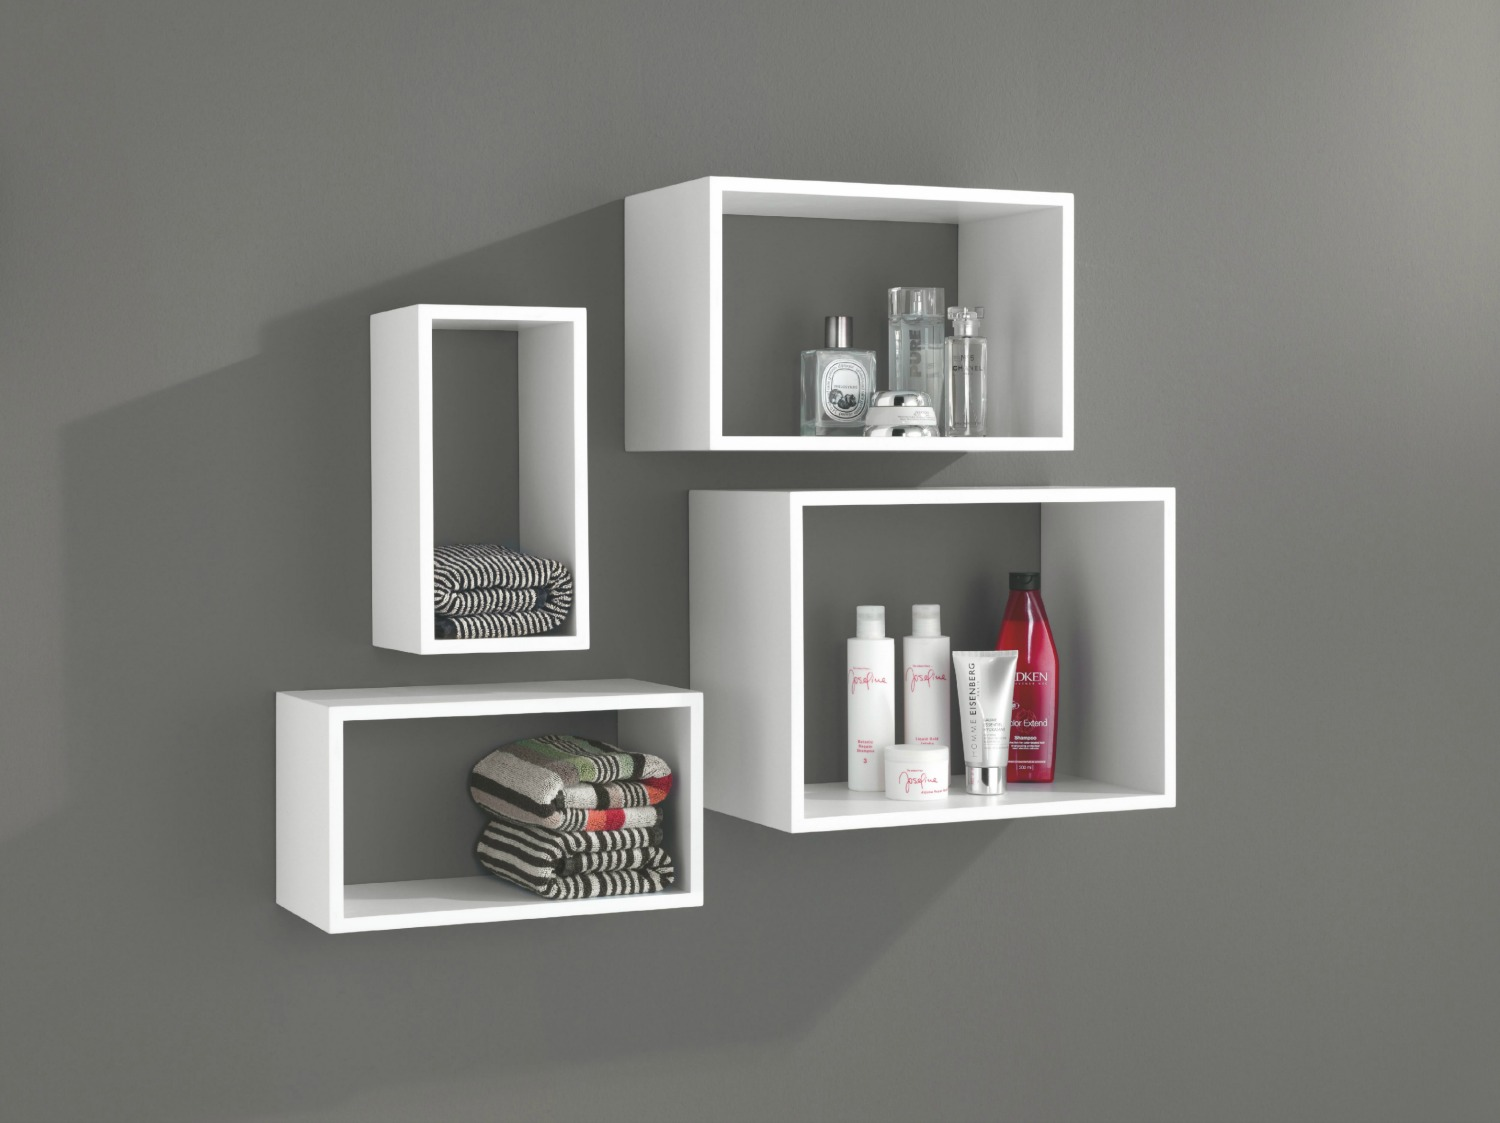 floating shelves wall great variety sizes windows grey gloss dolle piece cube shelf set white black with pegs small for bedroom hall stand ikea knape and vogt kits glass hanging